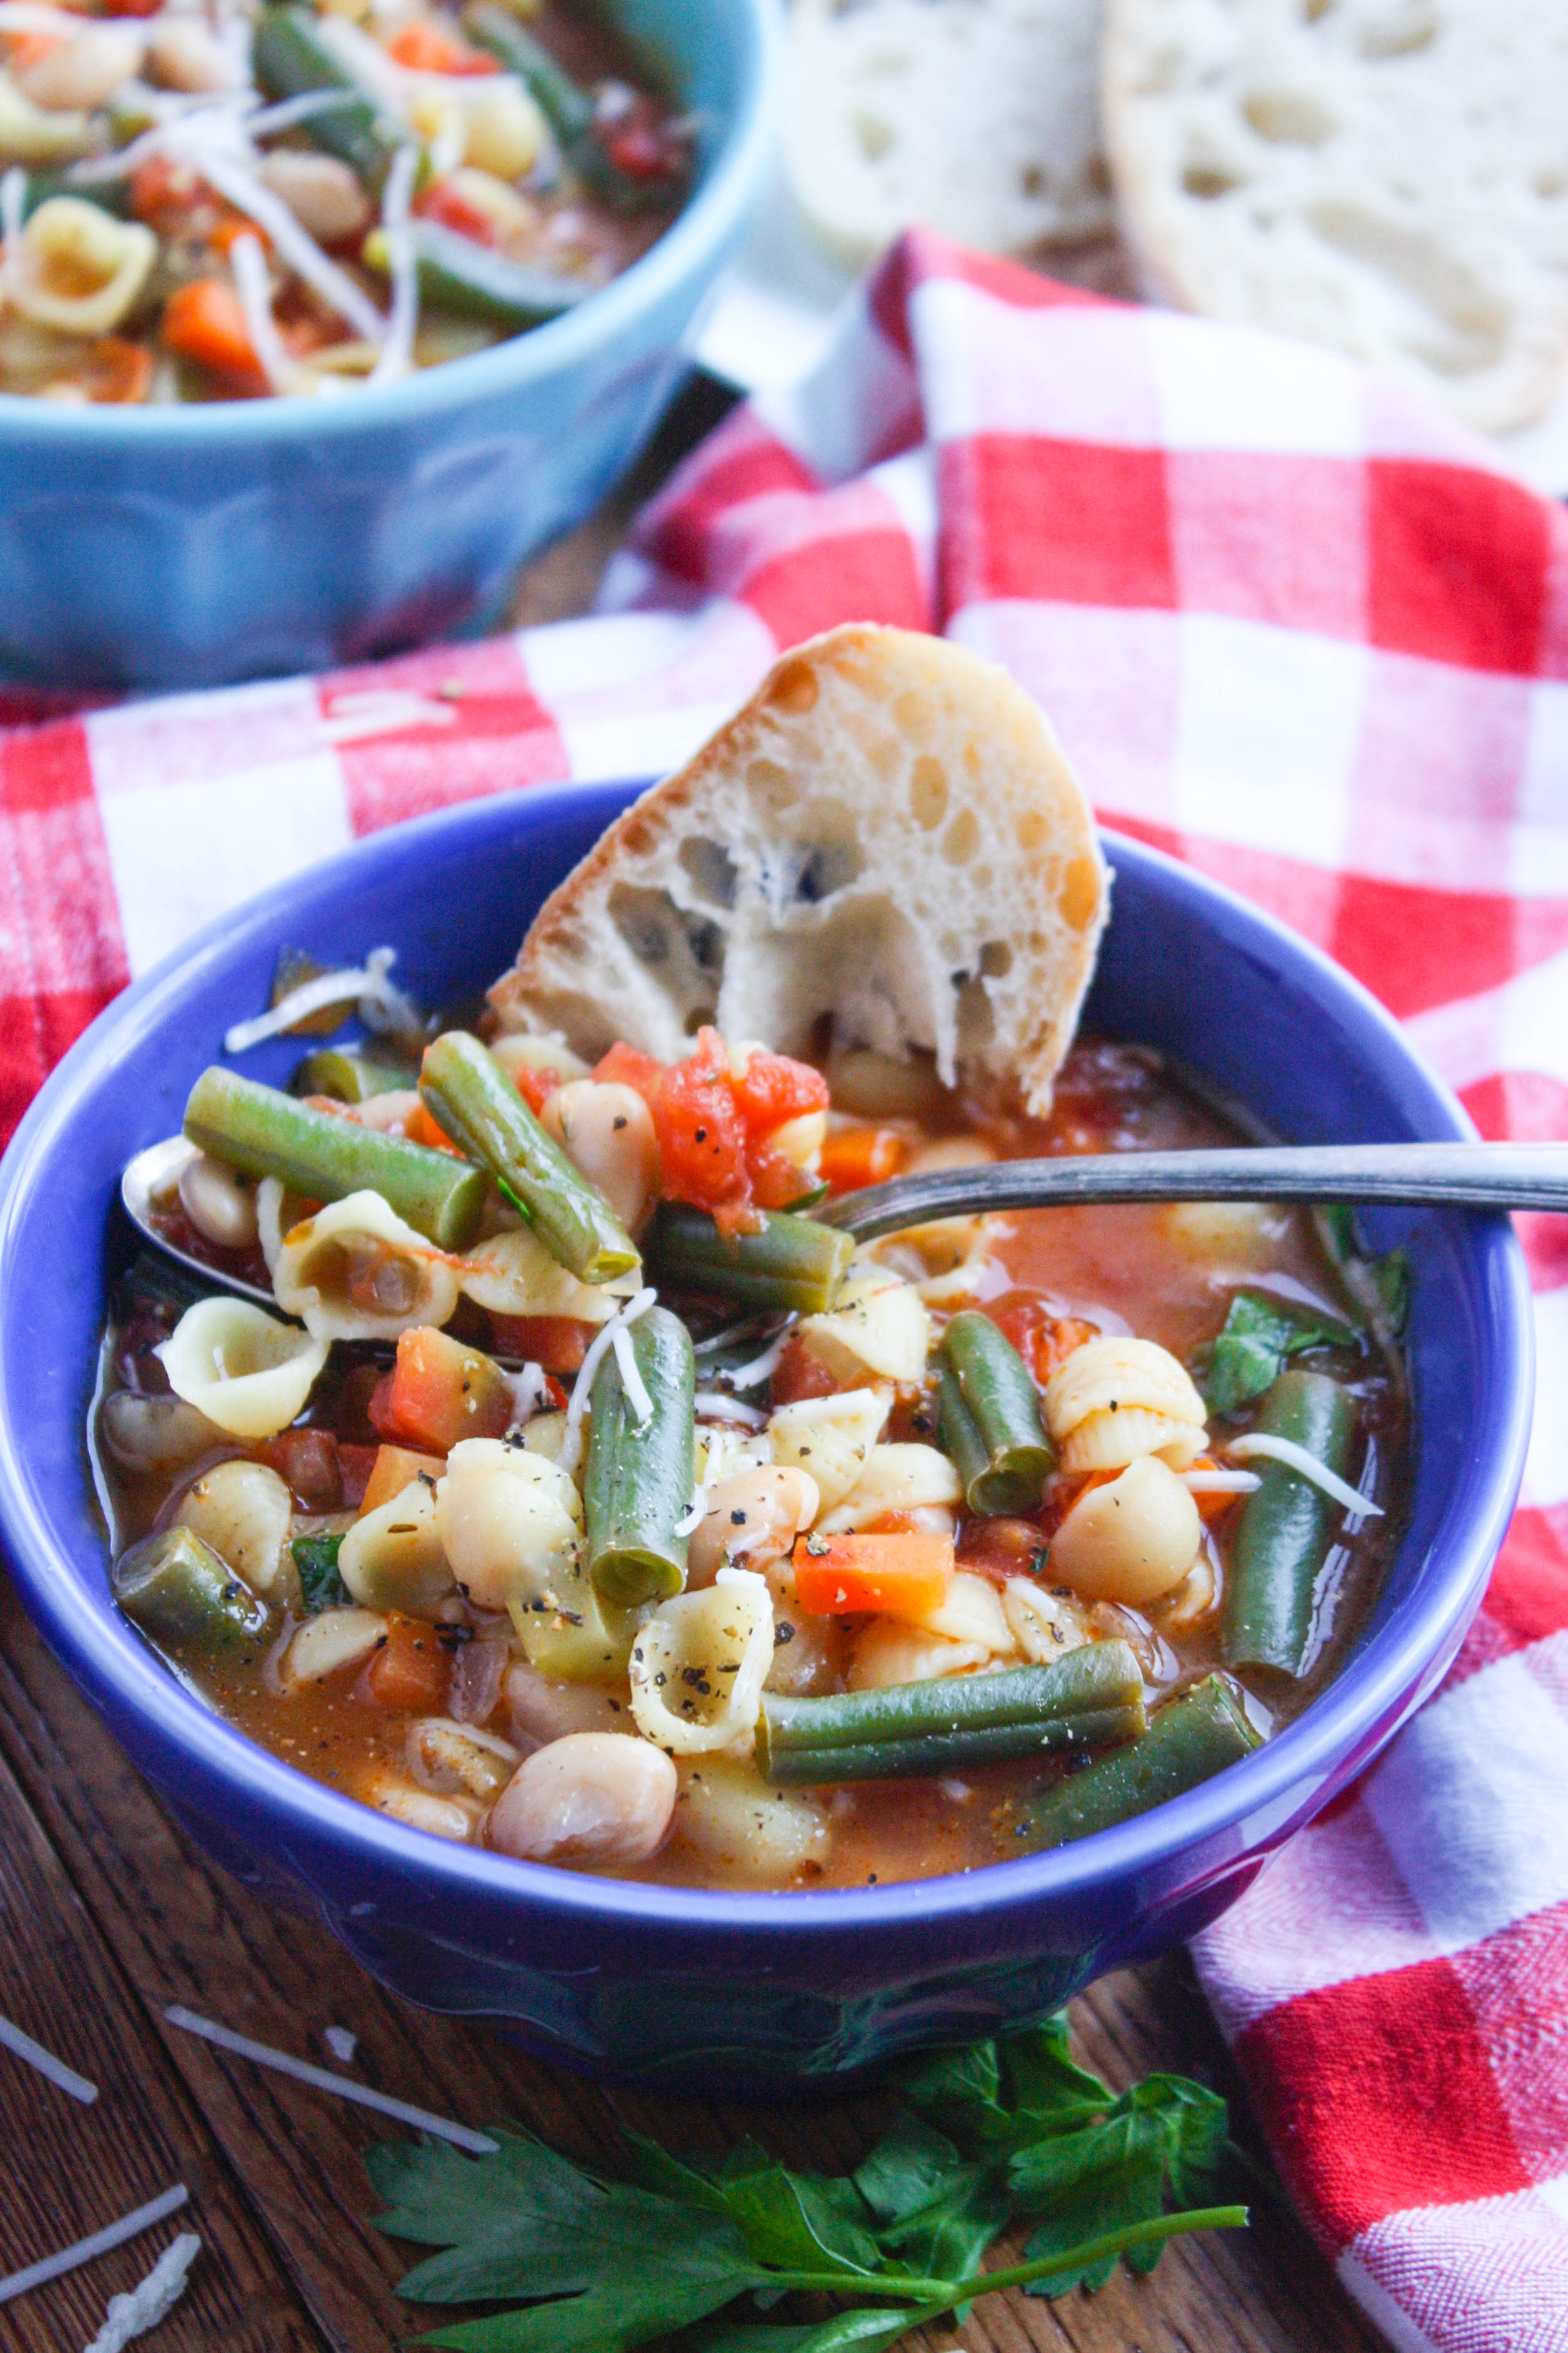 Minestrone Soup is a colorful soup that's so easy to make. You'll love minestrone soup for its wonderful flavor and all its tasty ingredients.